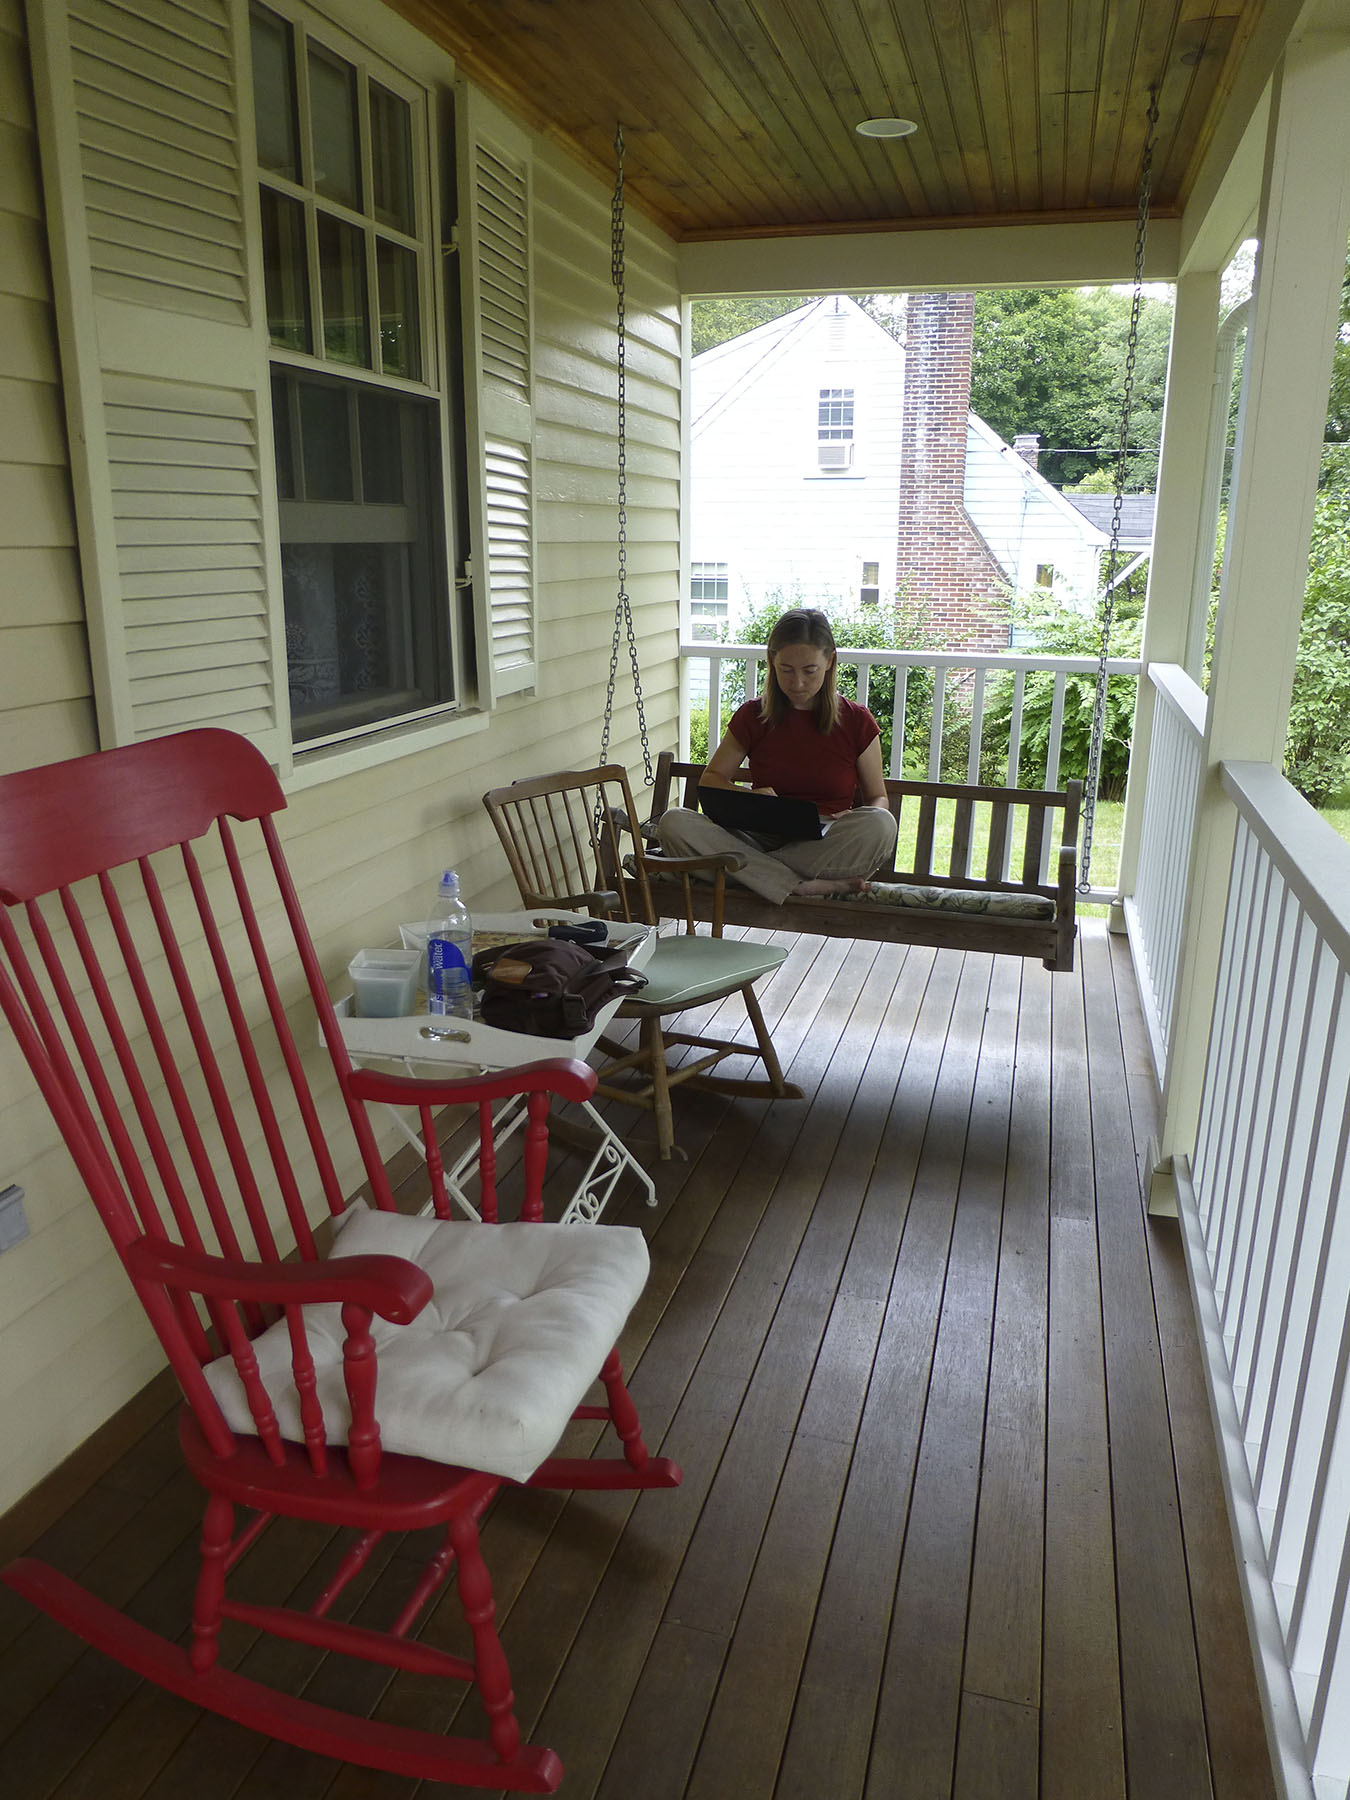 I've spent many hours on this front porch exploiting free wifi.